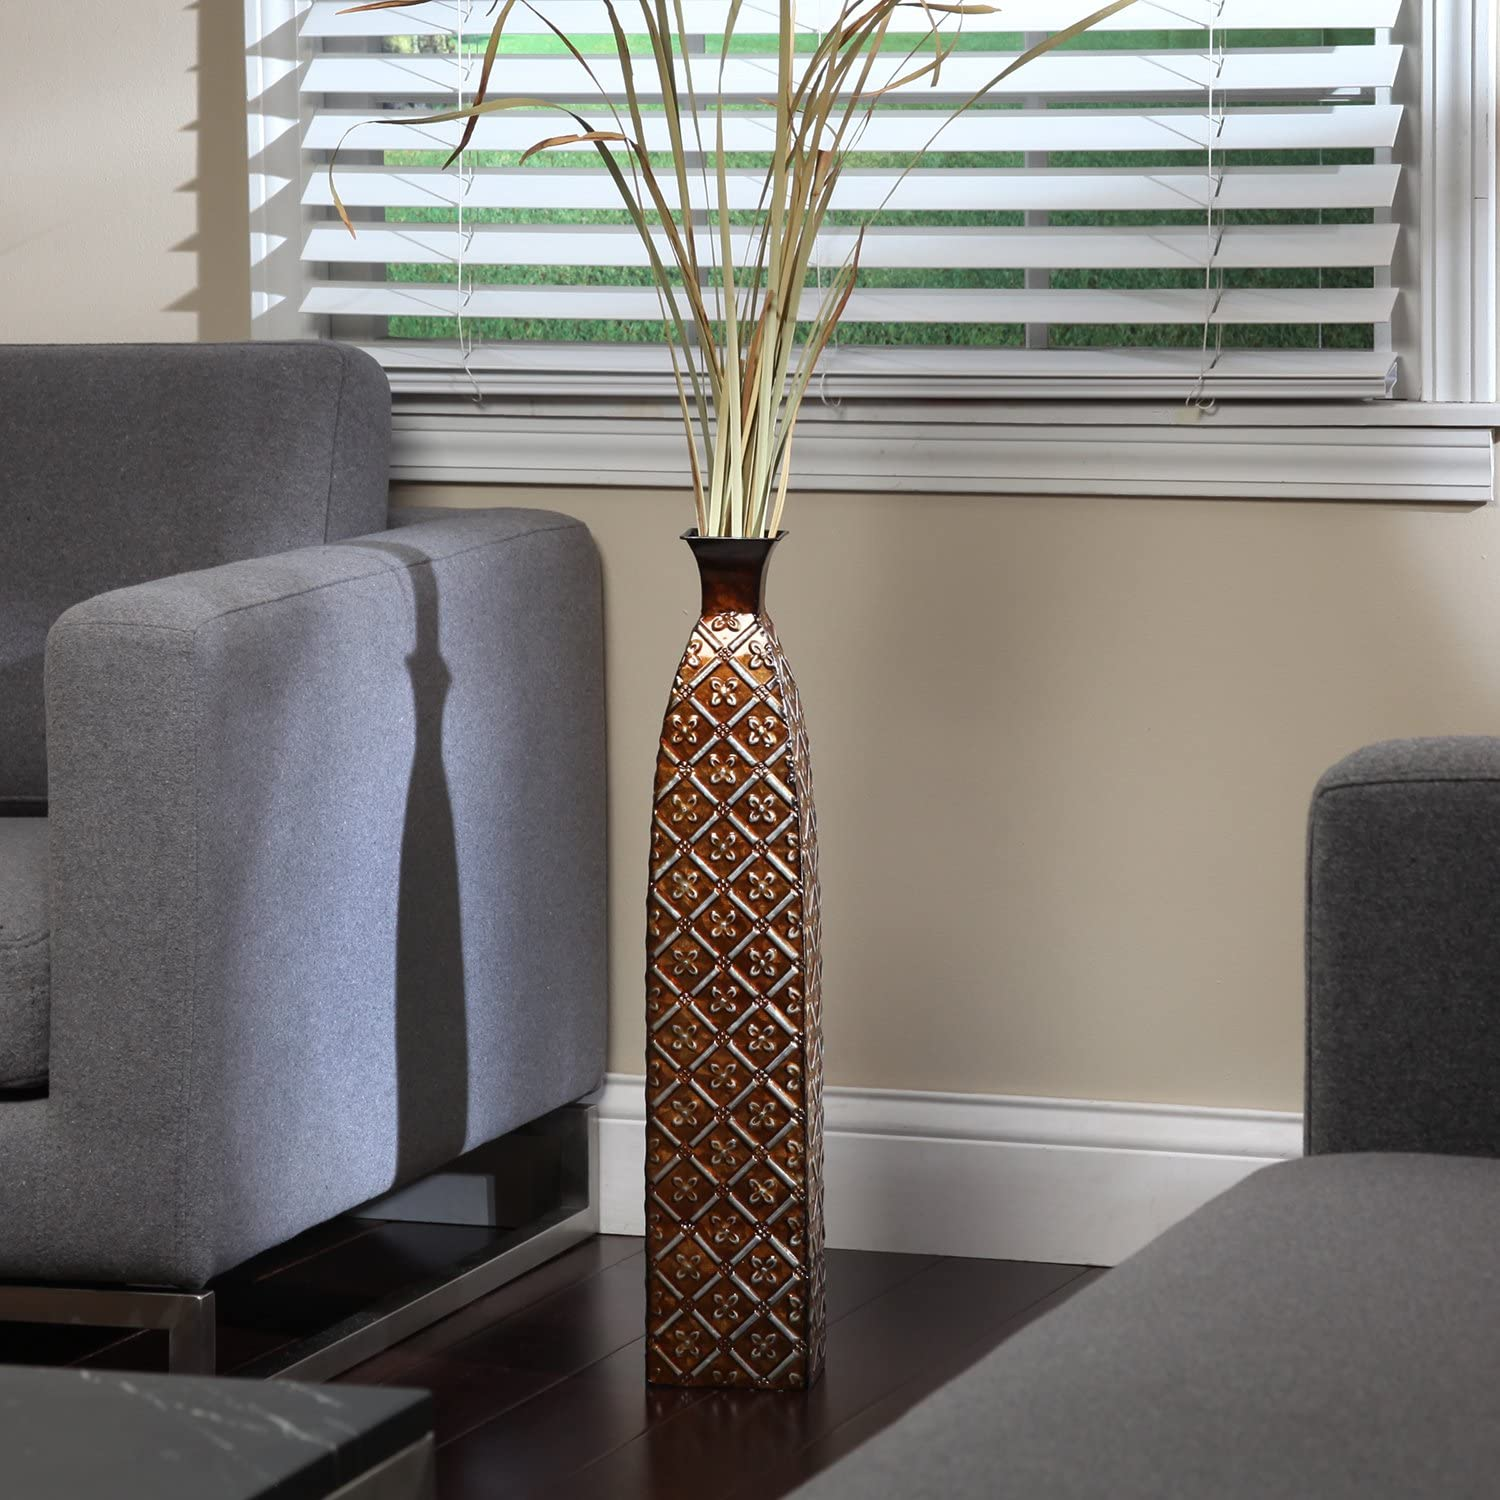 Multicolored metal embossed floor vase